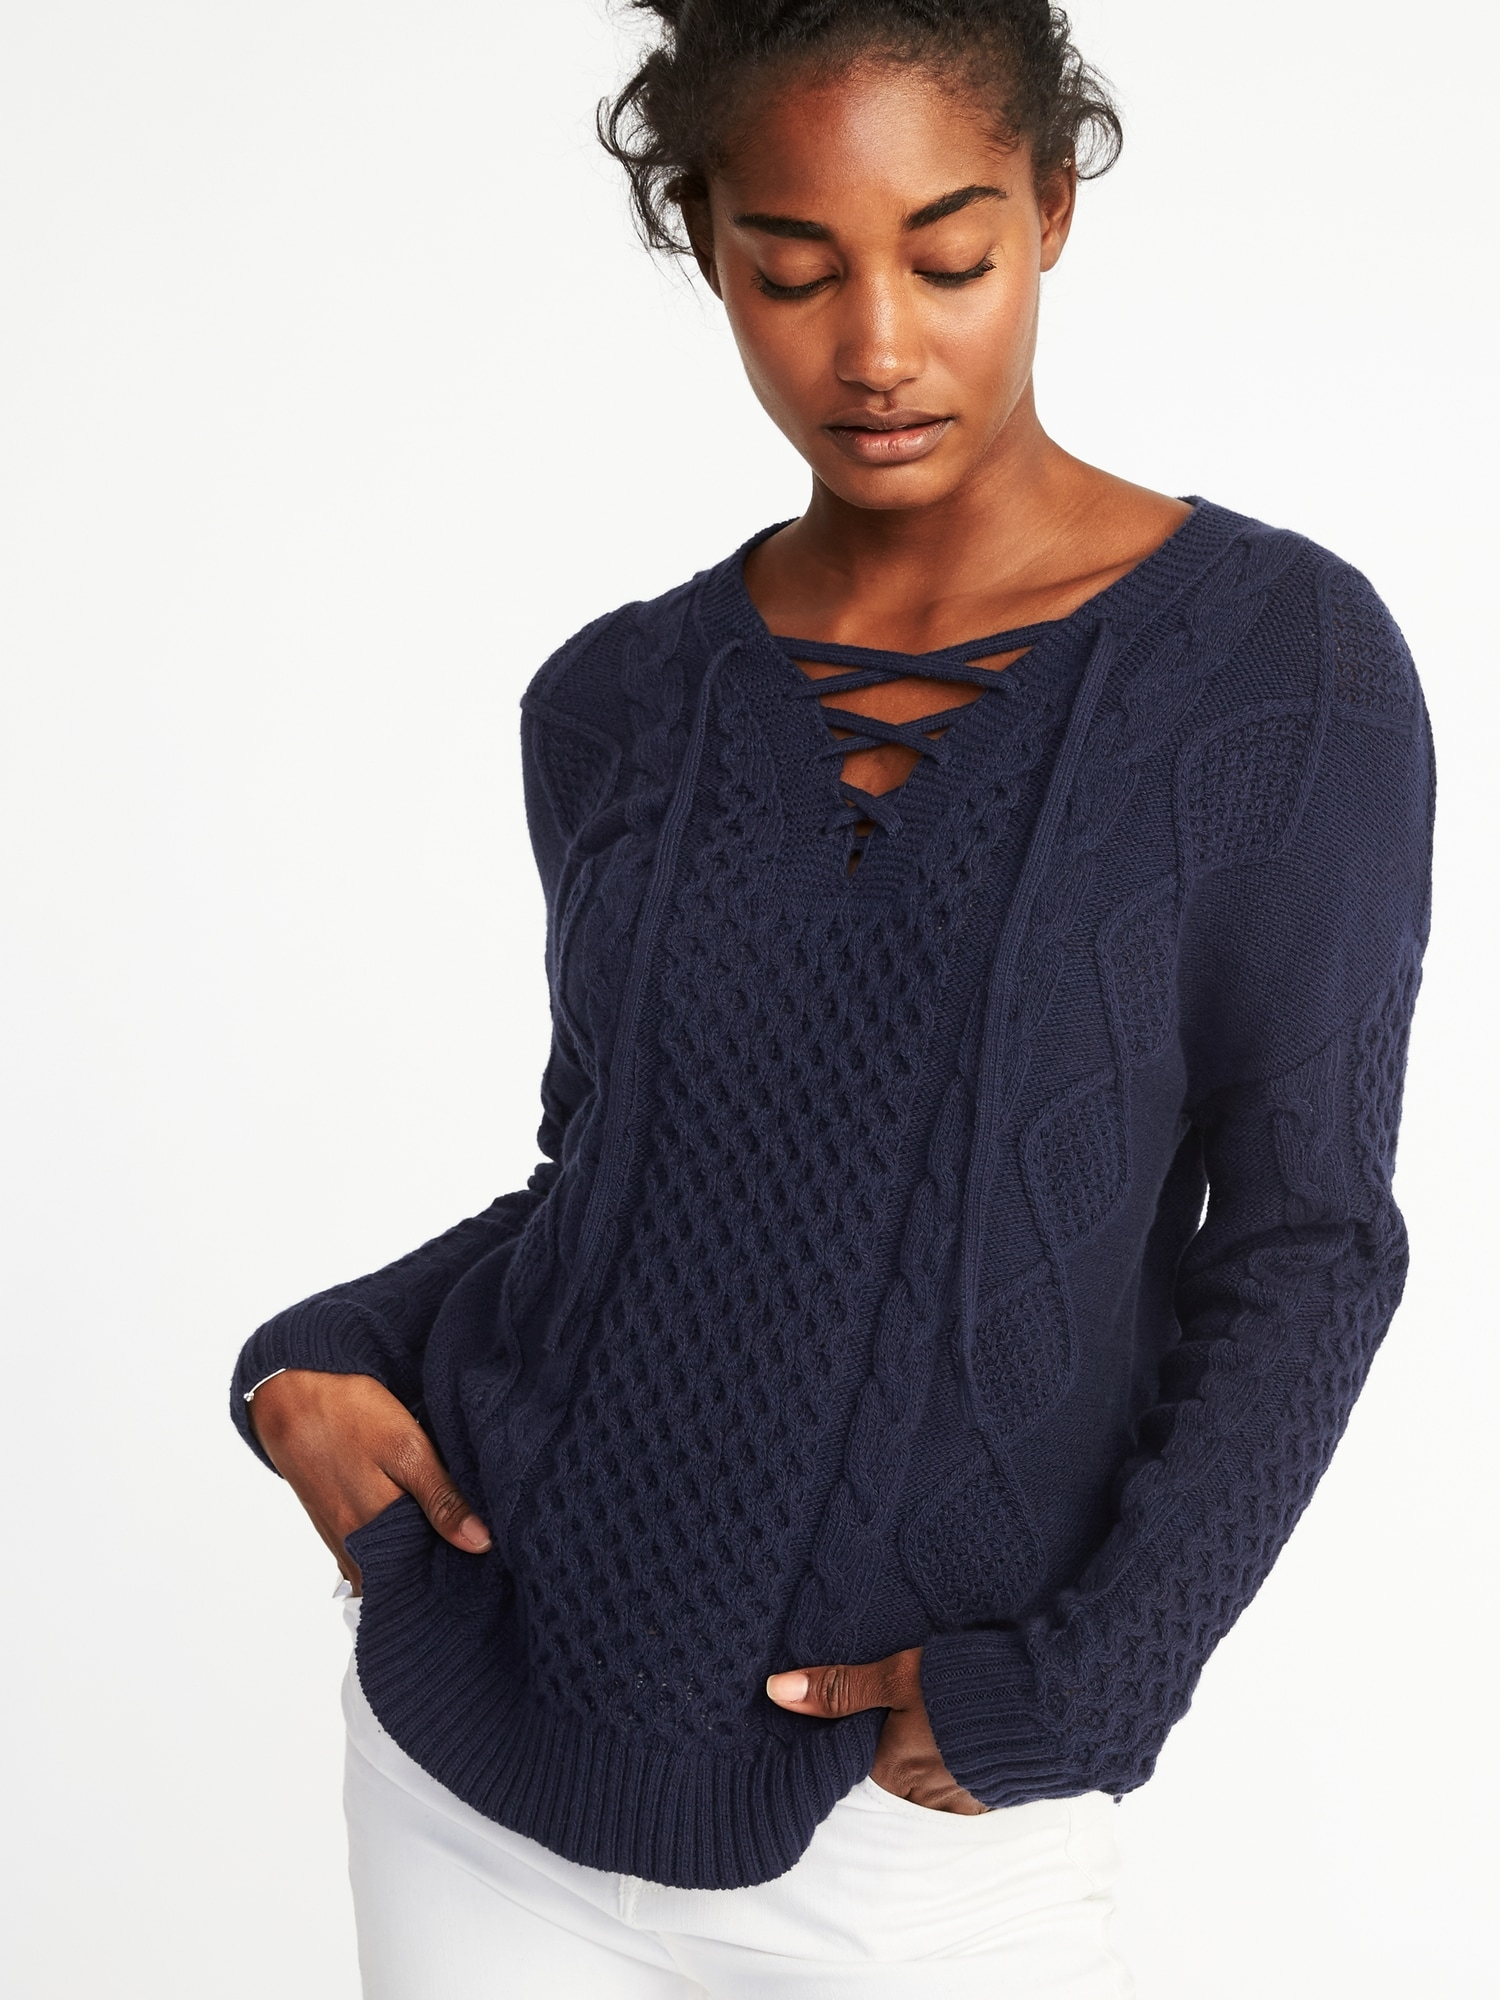 Cable-Knit Lace-Up Sweater for Women | Old Navy